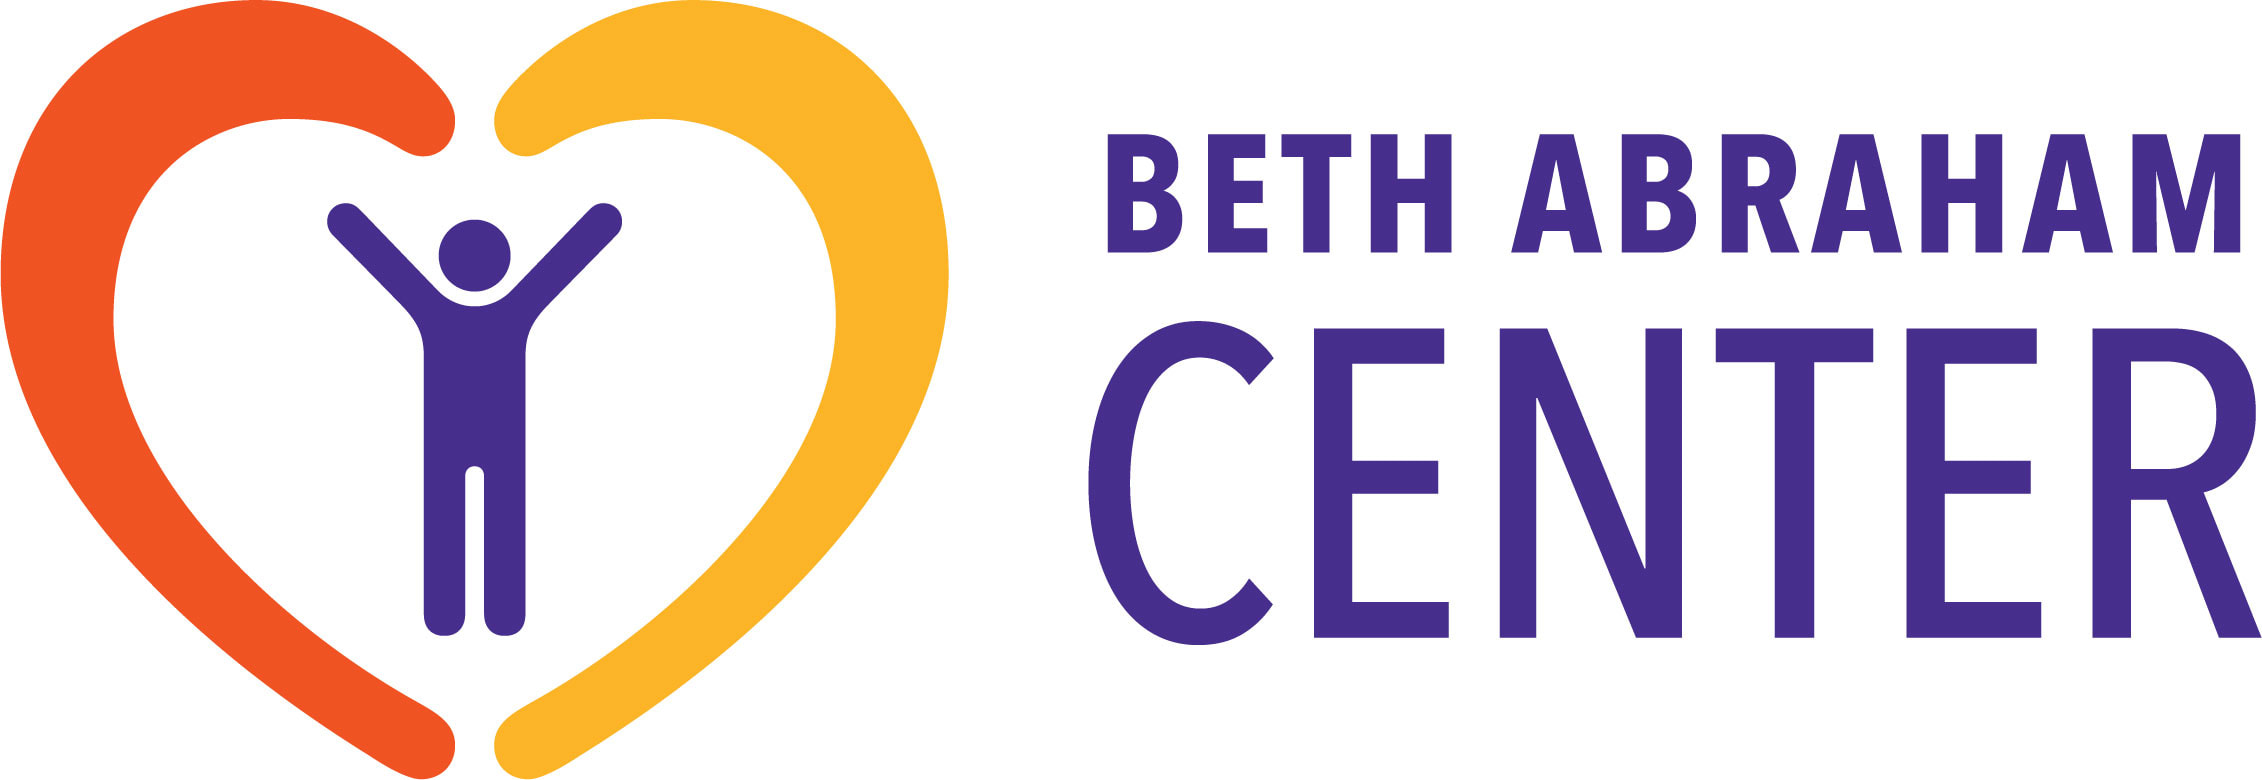 Beth Abraham Center